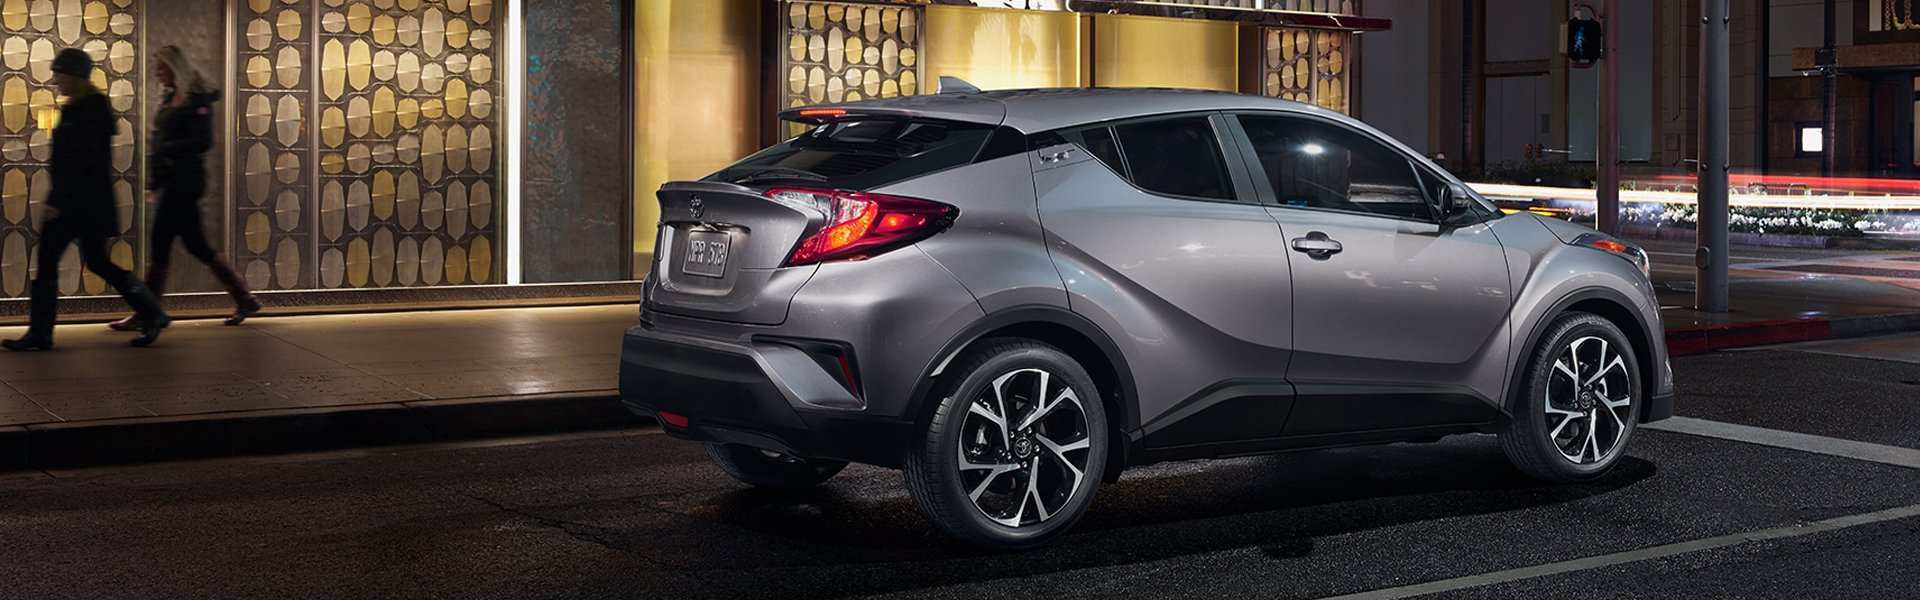 60 All New 2019 Toyota C Hr Prices by 2019 Toyota C Hr